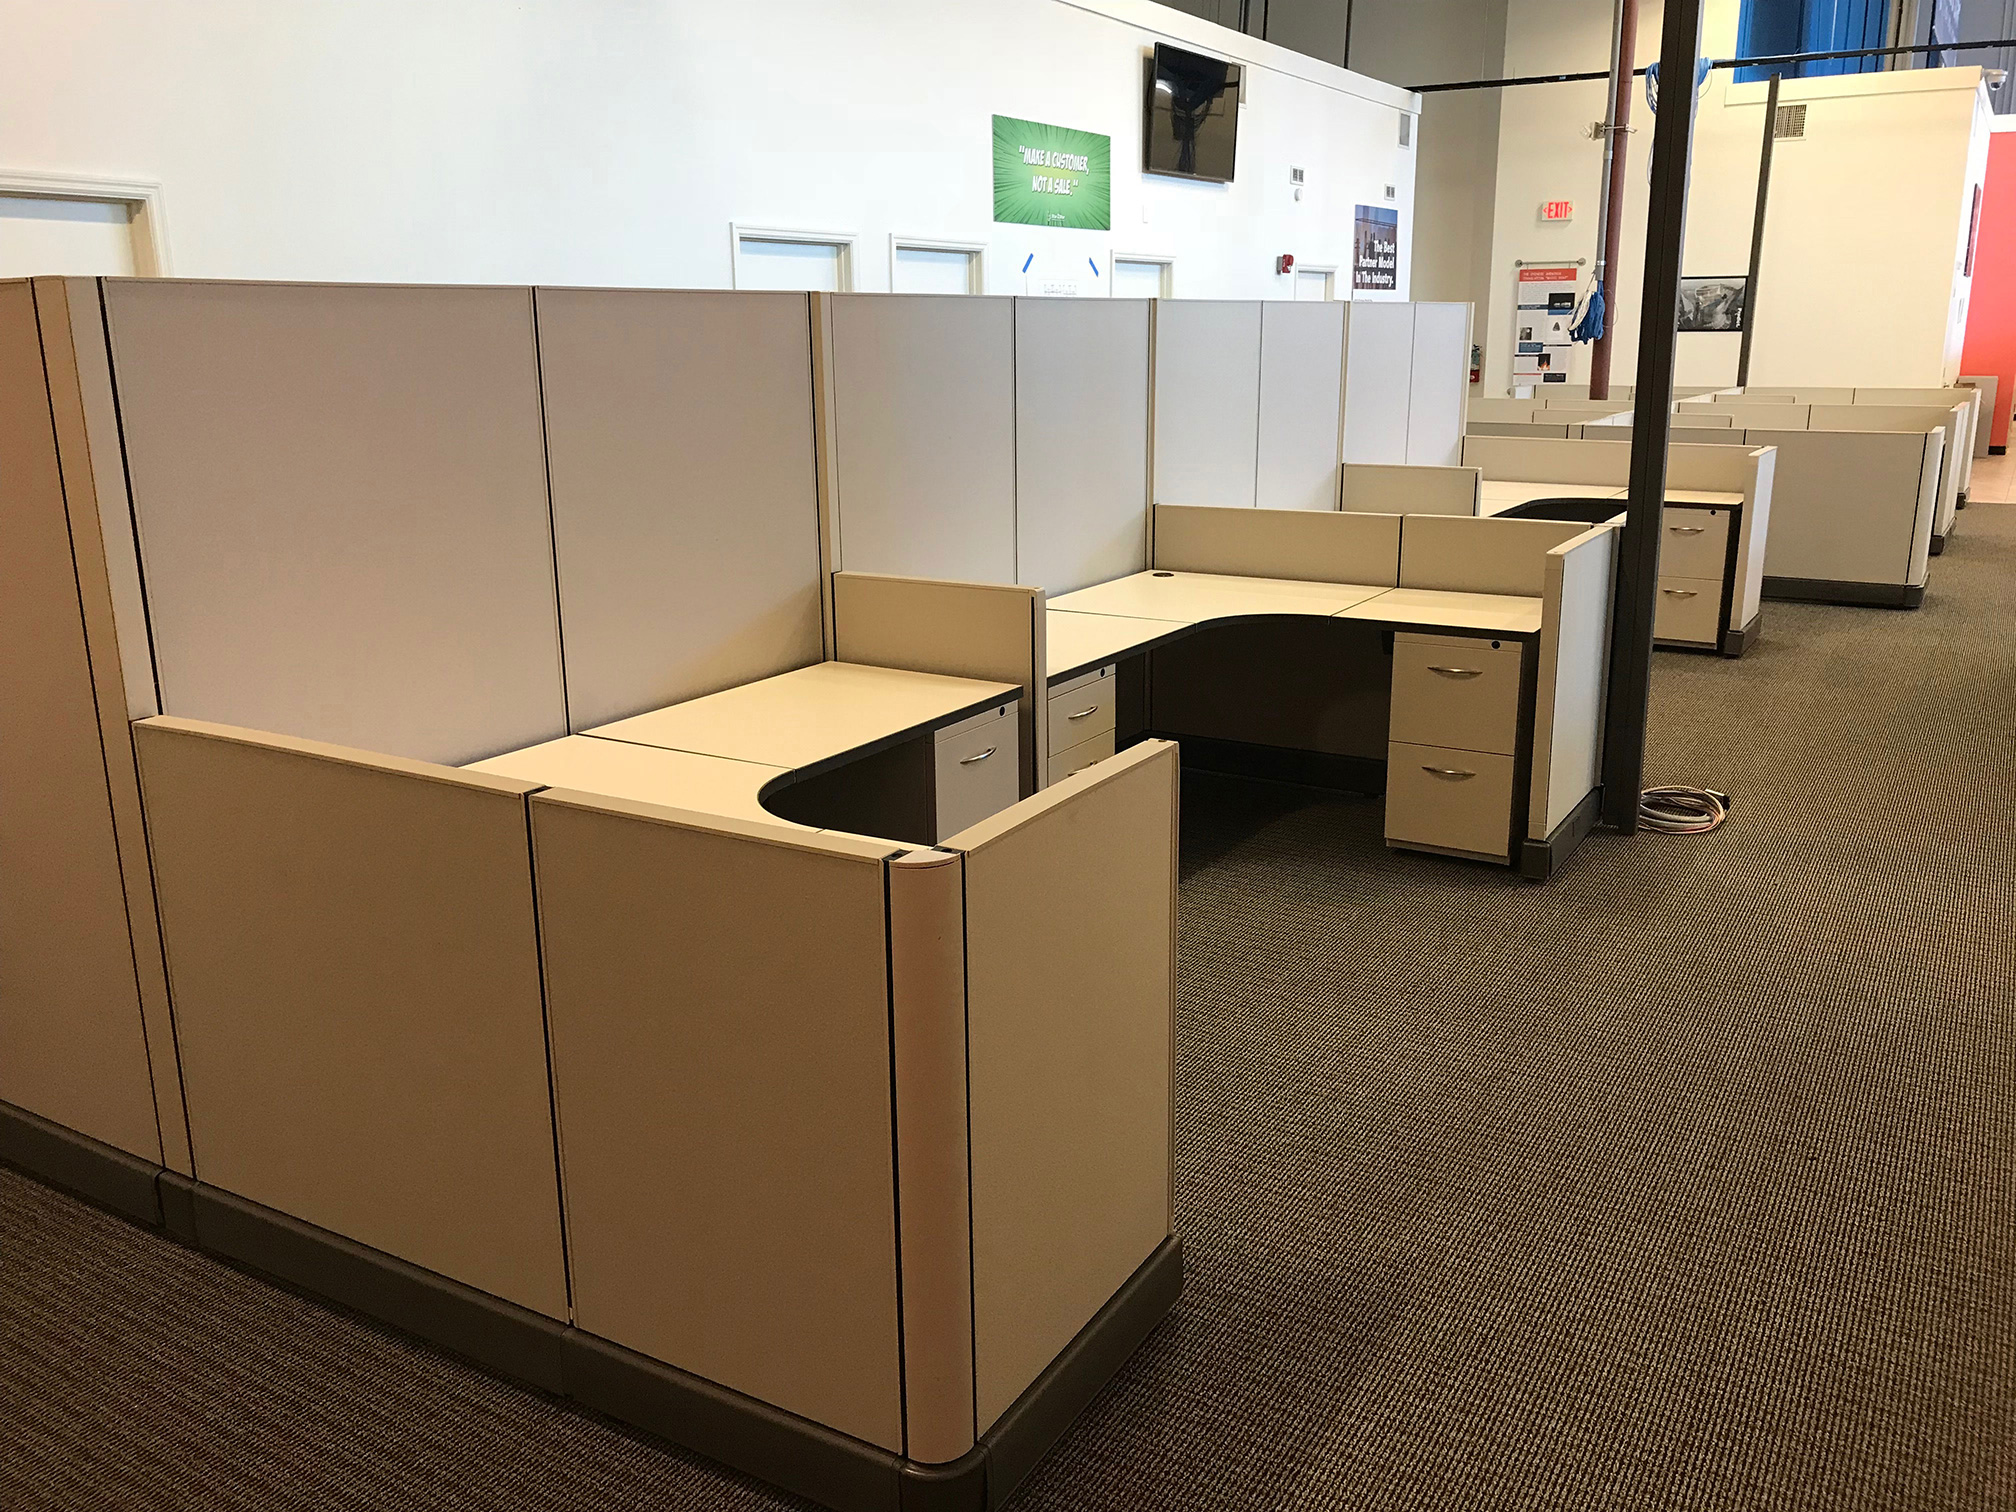 office-cubicles-for-sale-in-boca-raton-florida-3-2.jpg